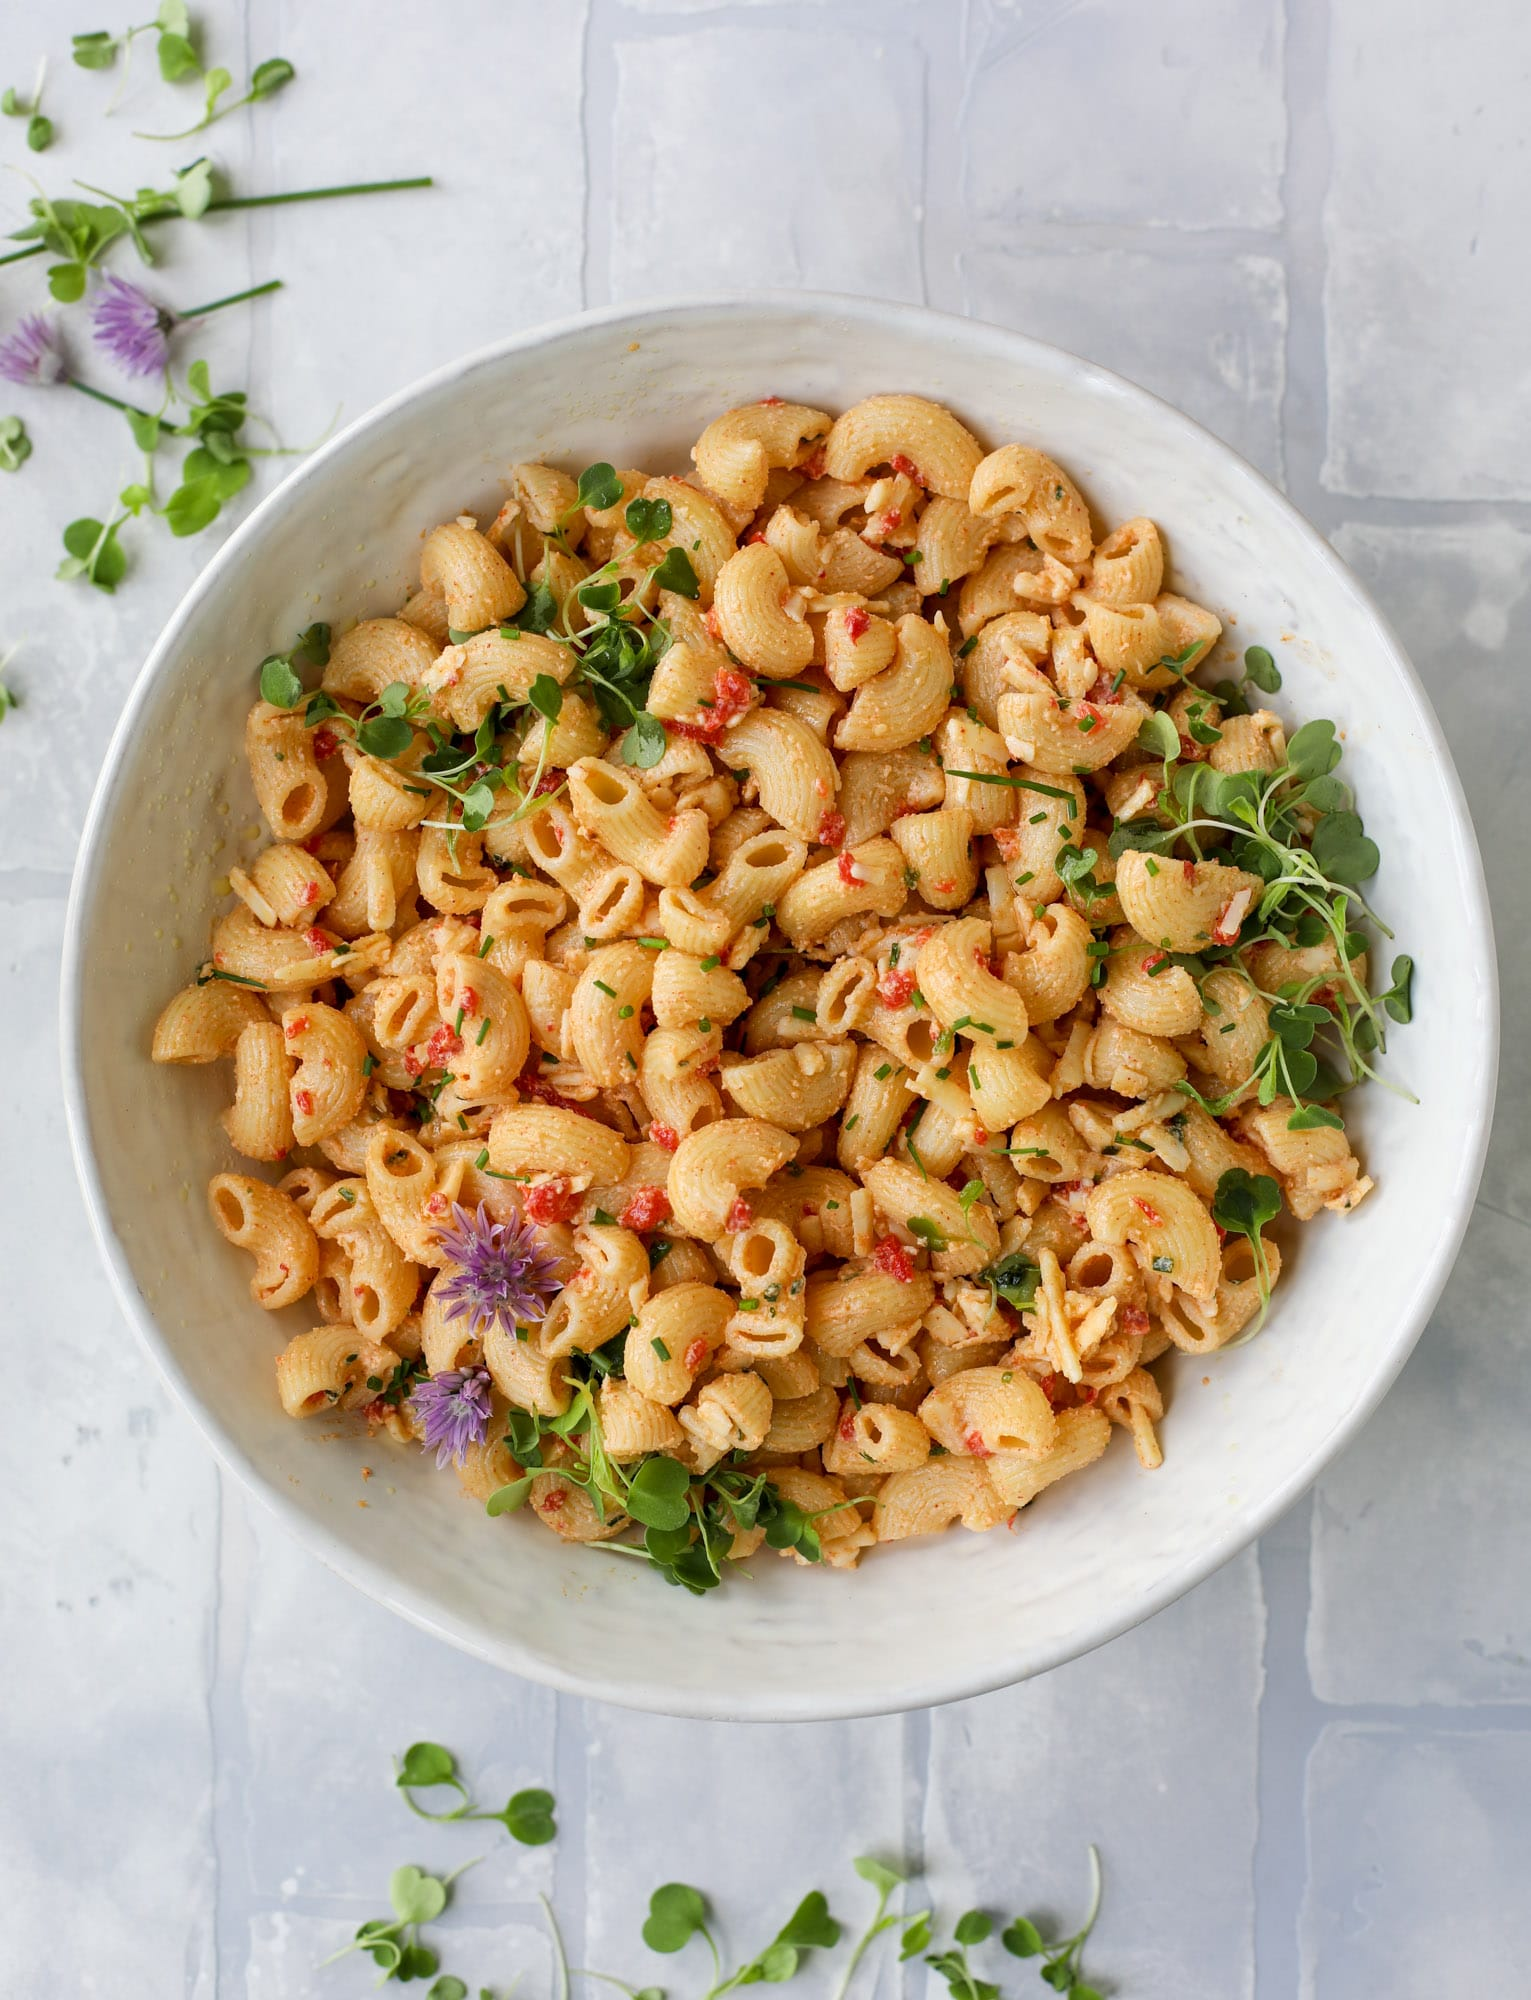 This pimento cheese pasta salad is the perfect summer side dish! All the flavor of pimento cheese and all the comforts of pasta salad, in one bowl!